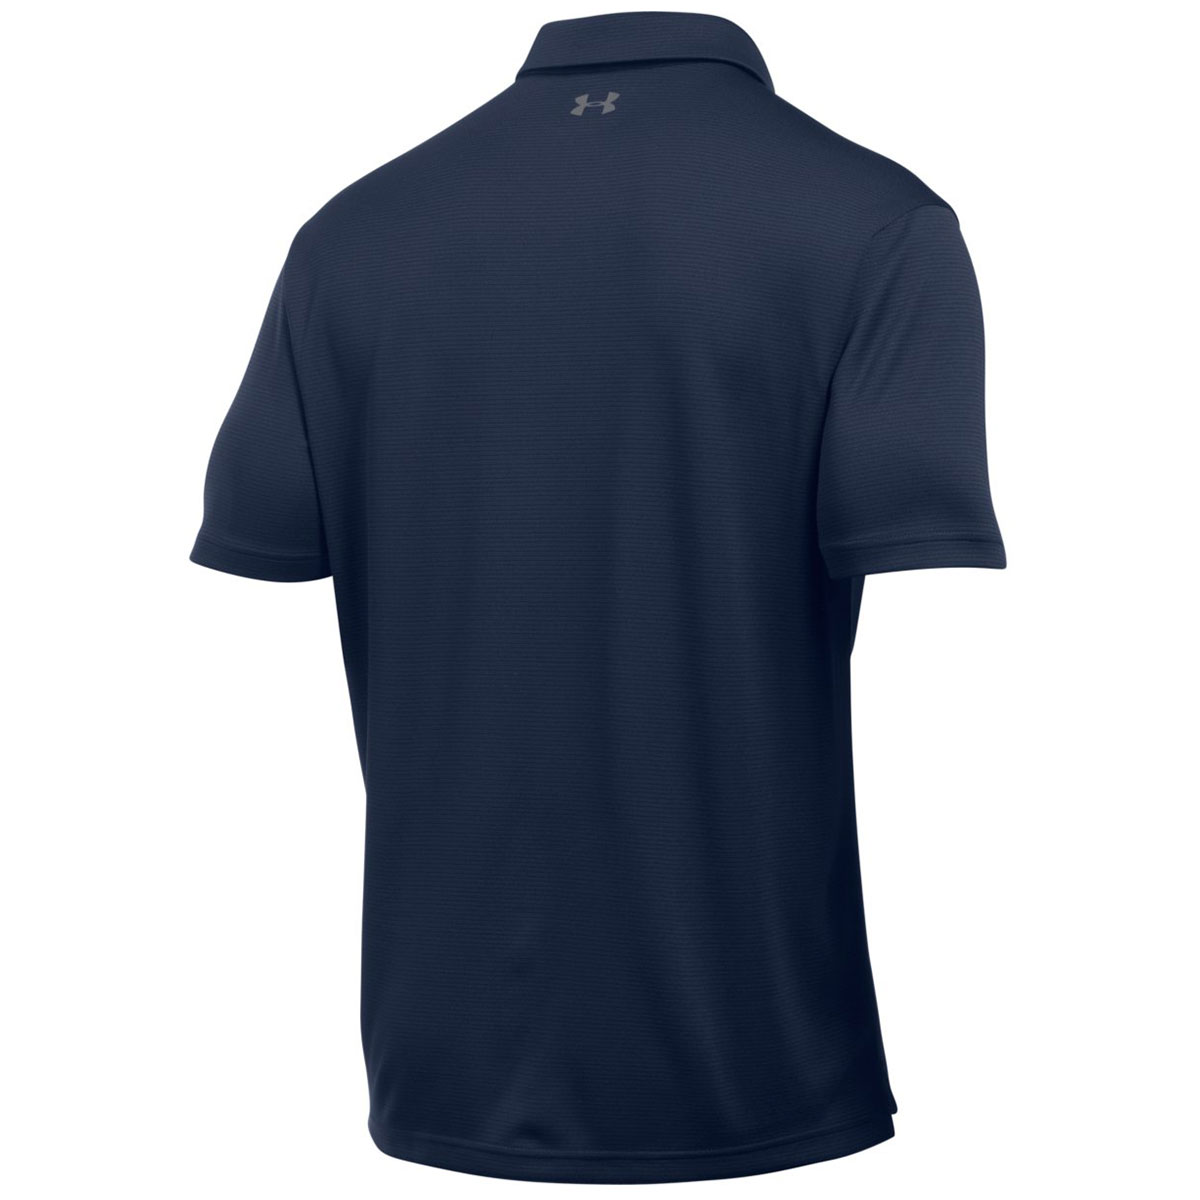 Under-Armour-Mens-2019-Golf-Tech-Wicking-Textured-Soft-Light-Polo-Shirt thumbnail 55